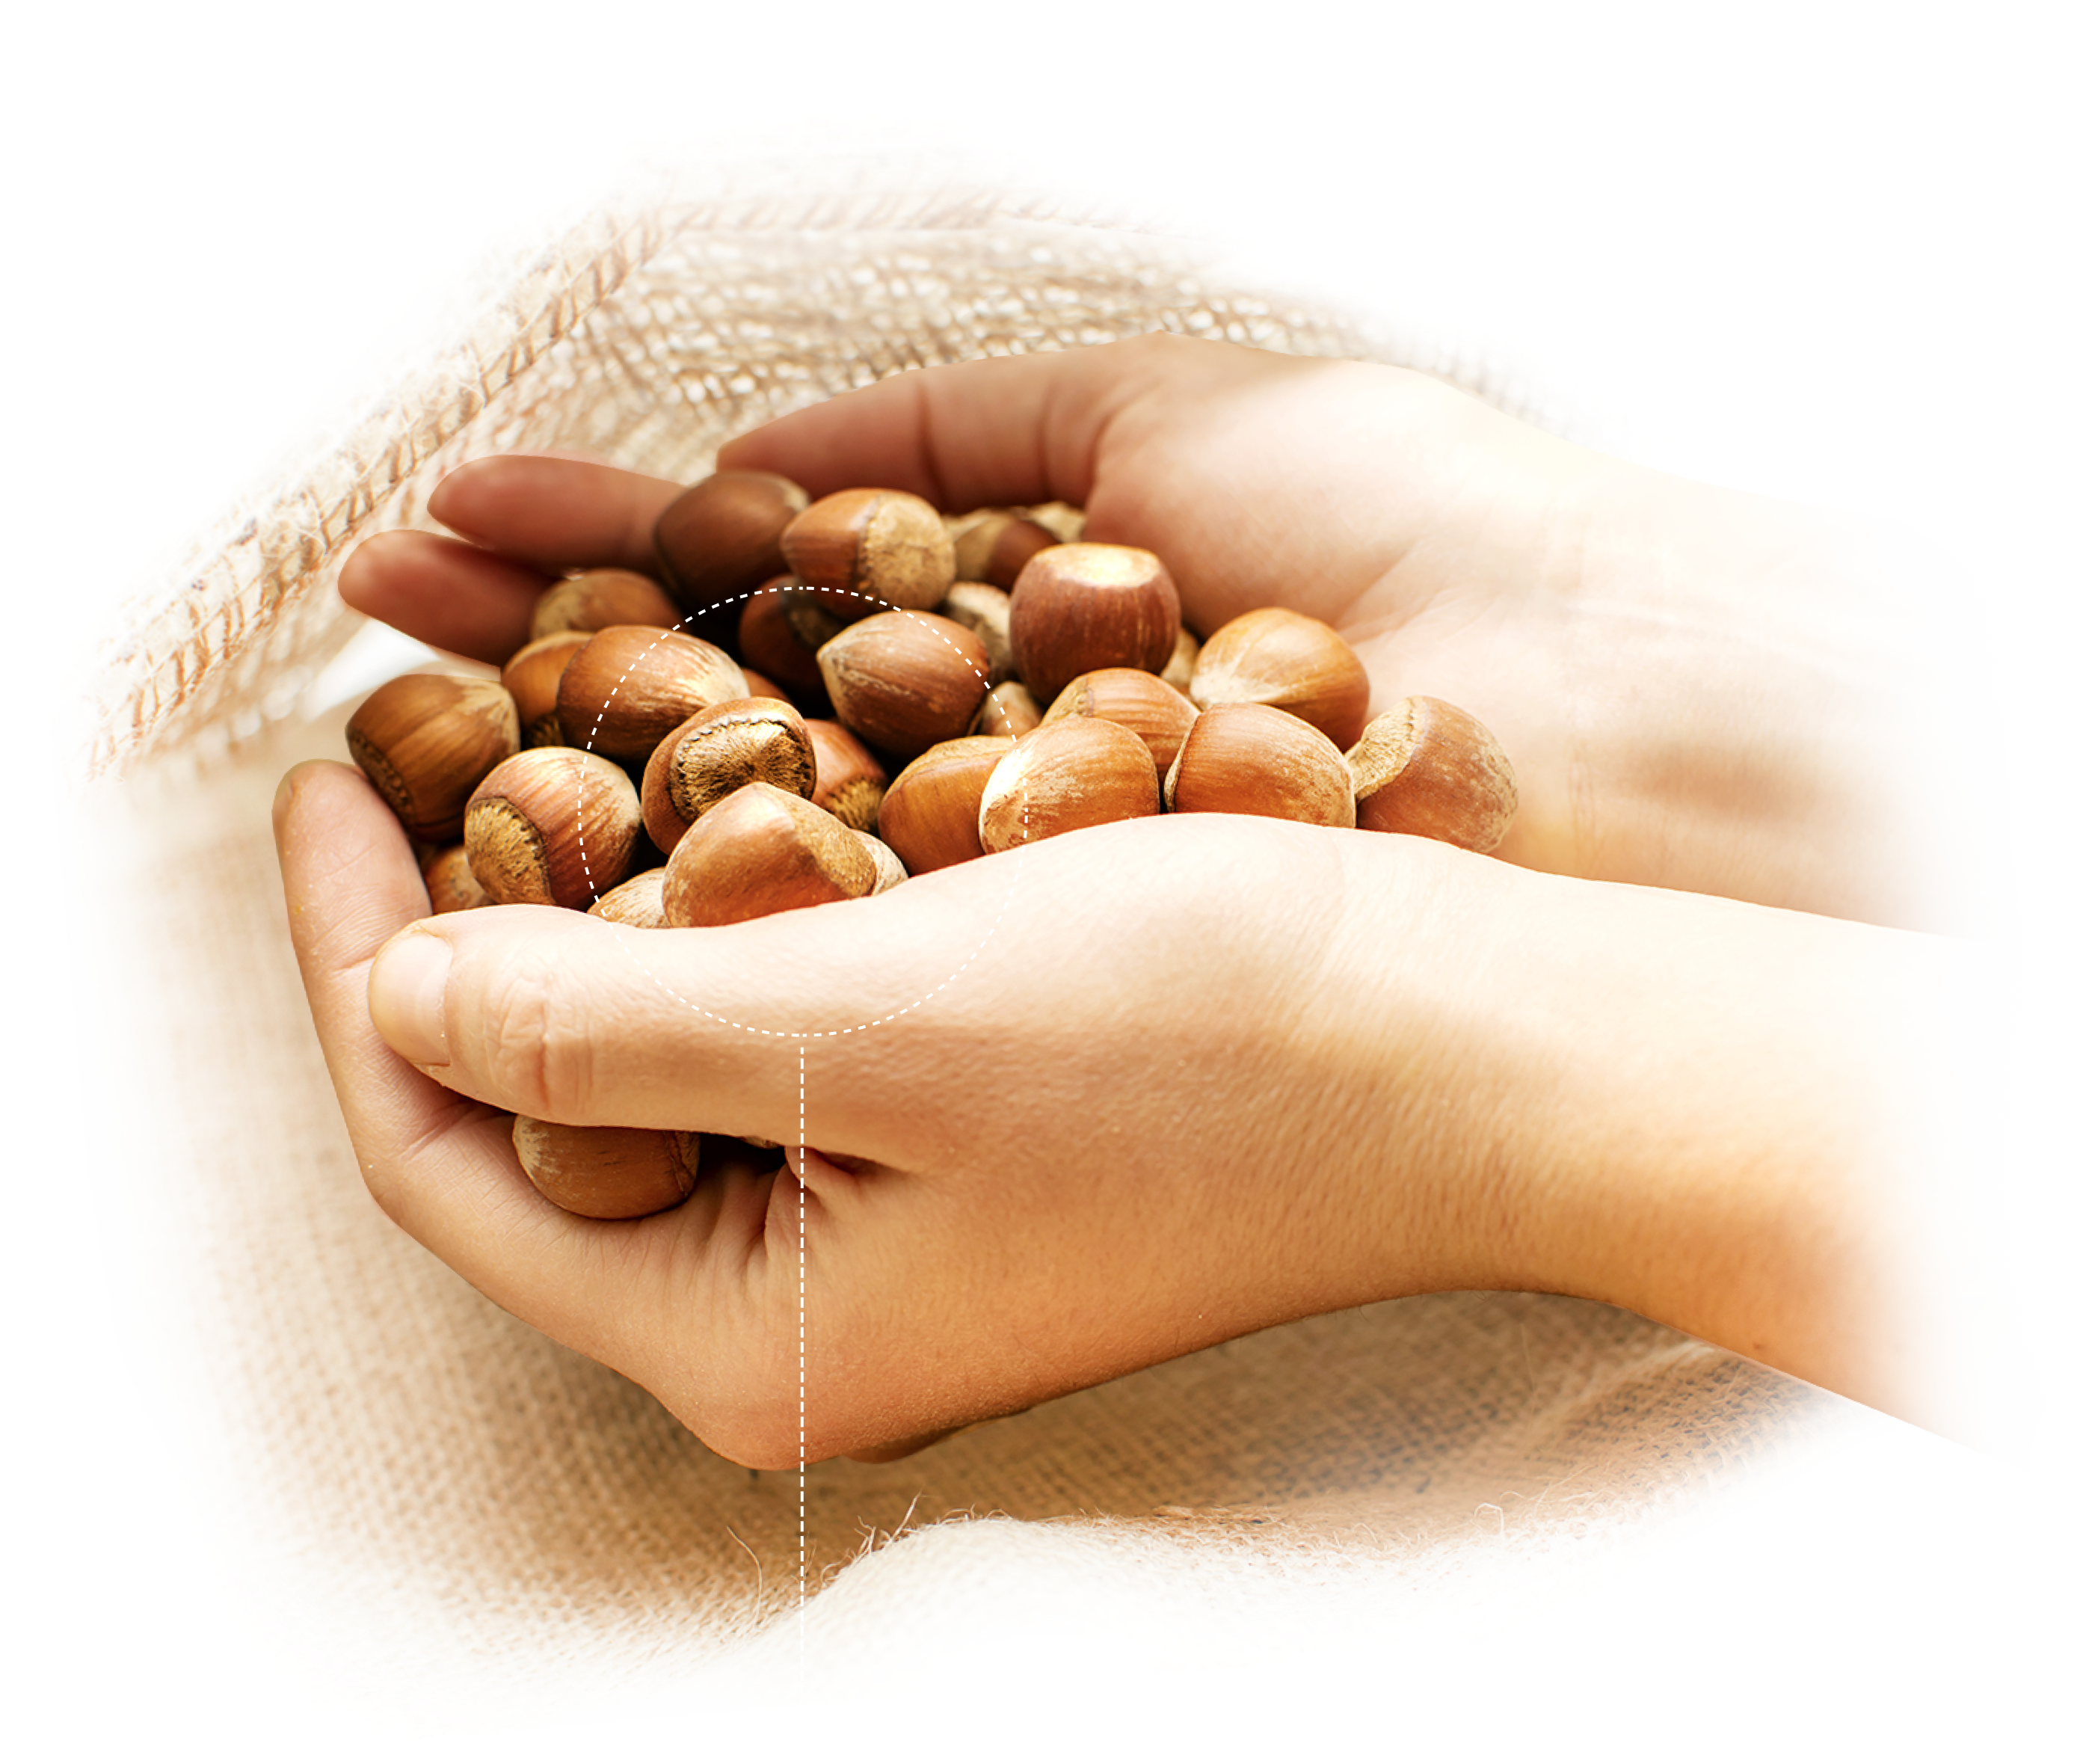 Hands with hazelnuts